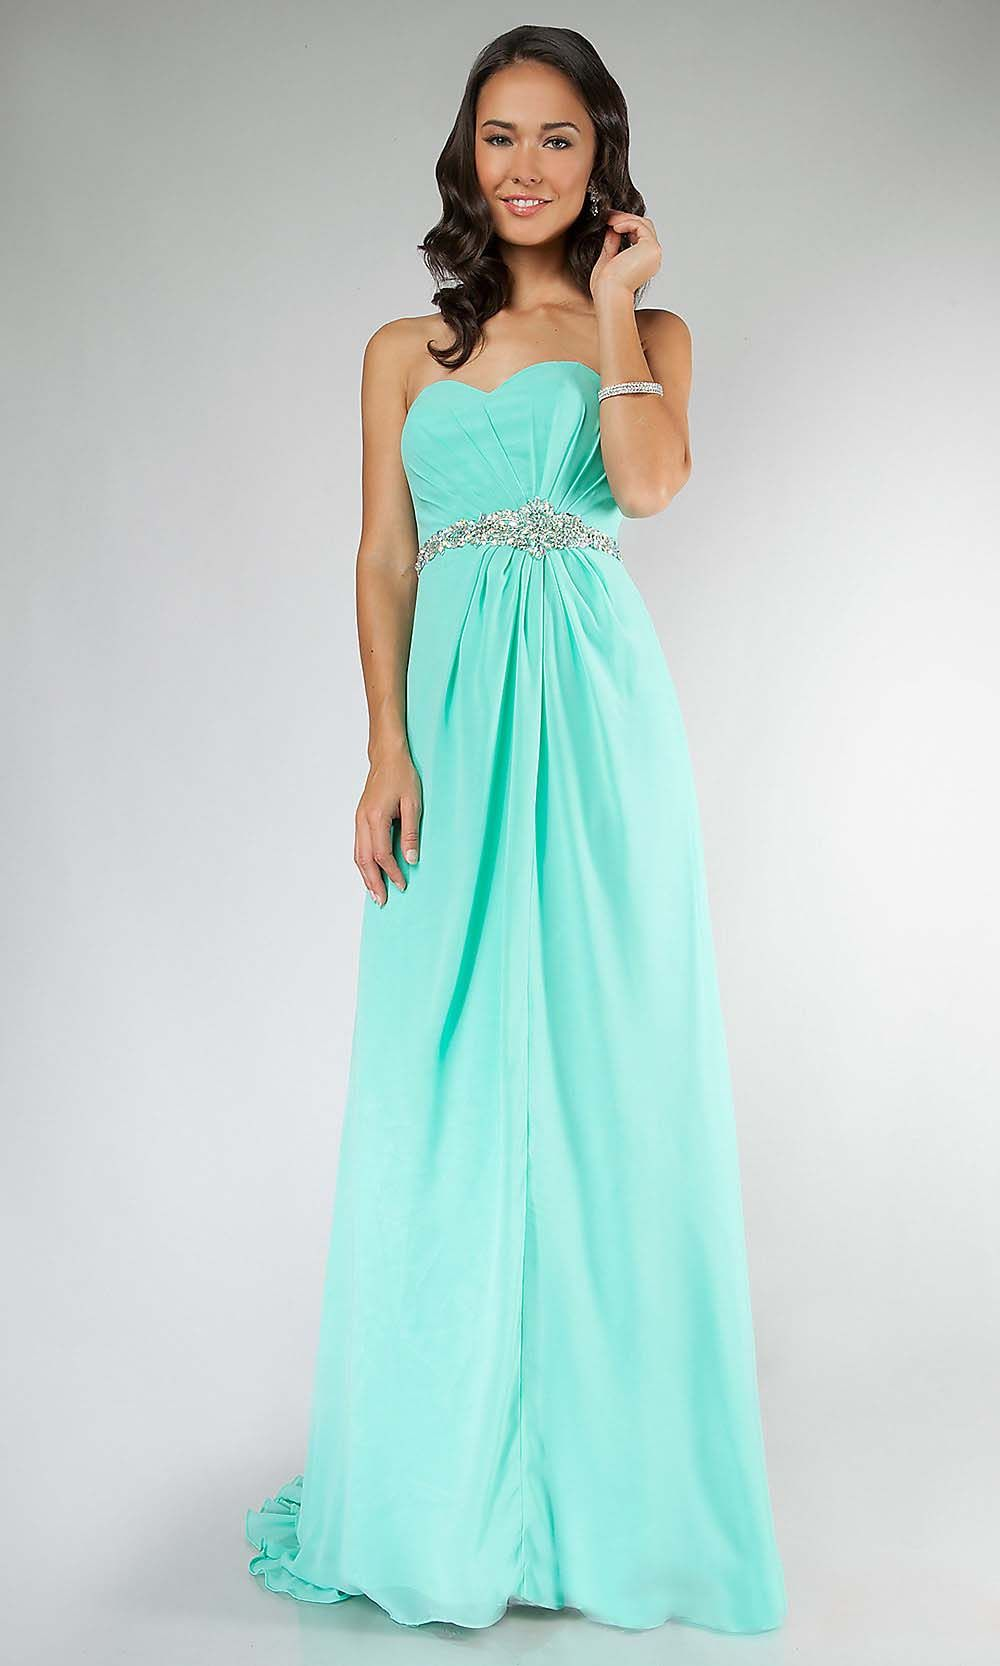 mint prom dresses, long prom dress, simple prom dresses, mint ...